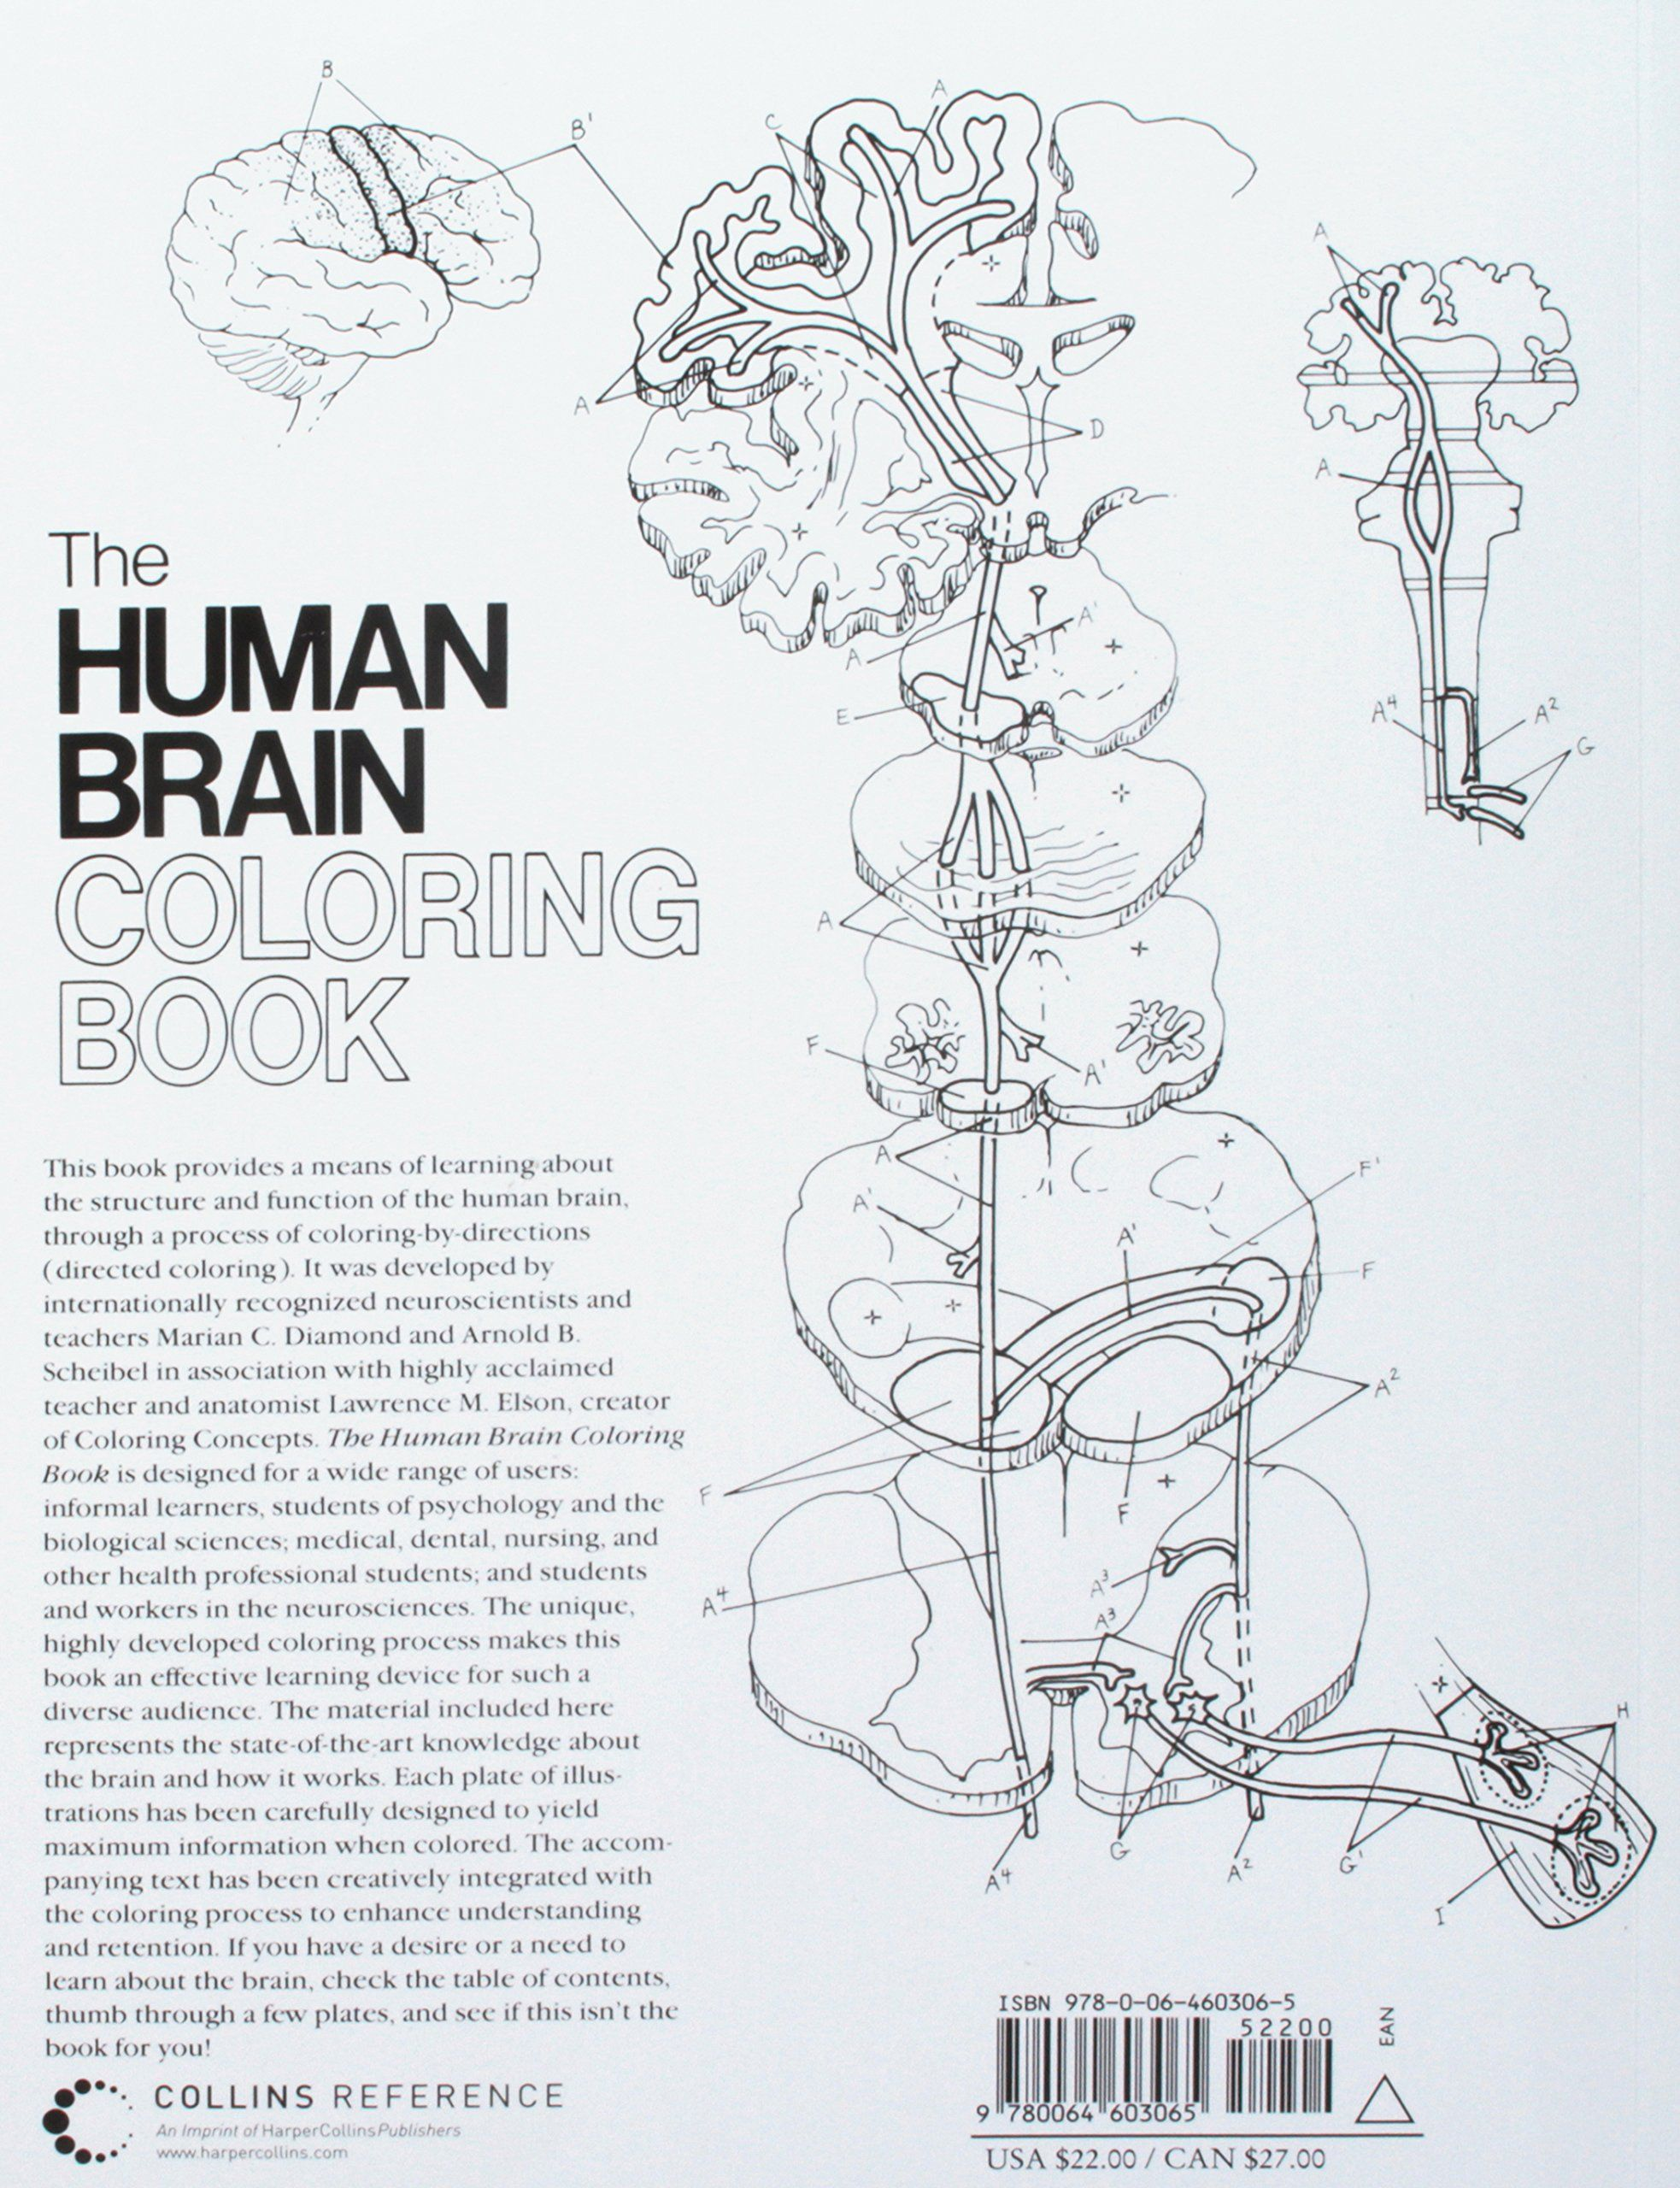 The Human Brain Coloring Book Coloring Concepts Series #Ad ...